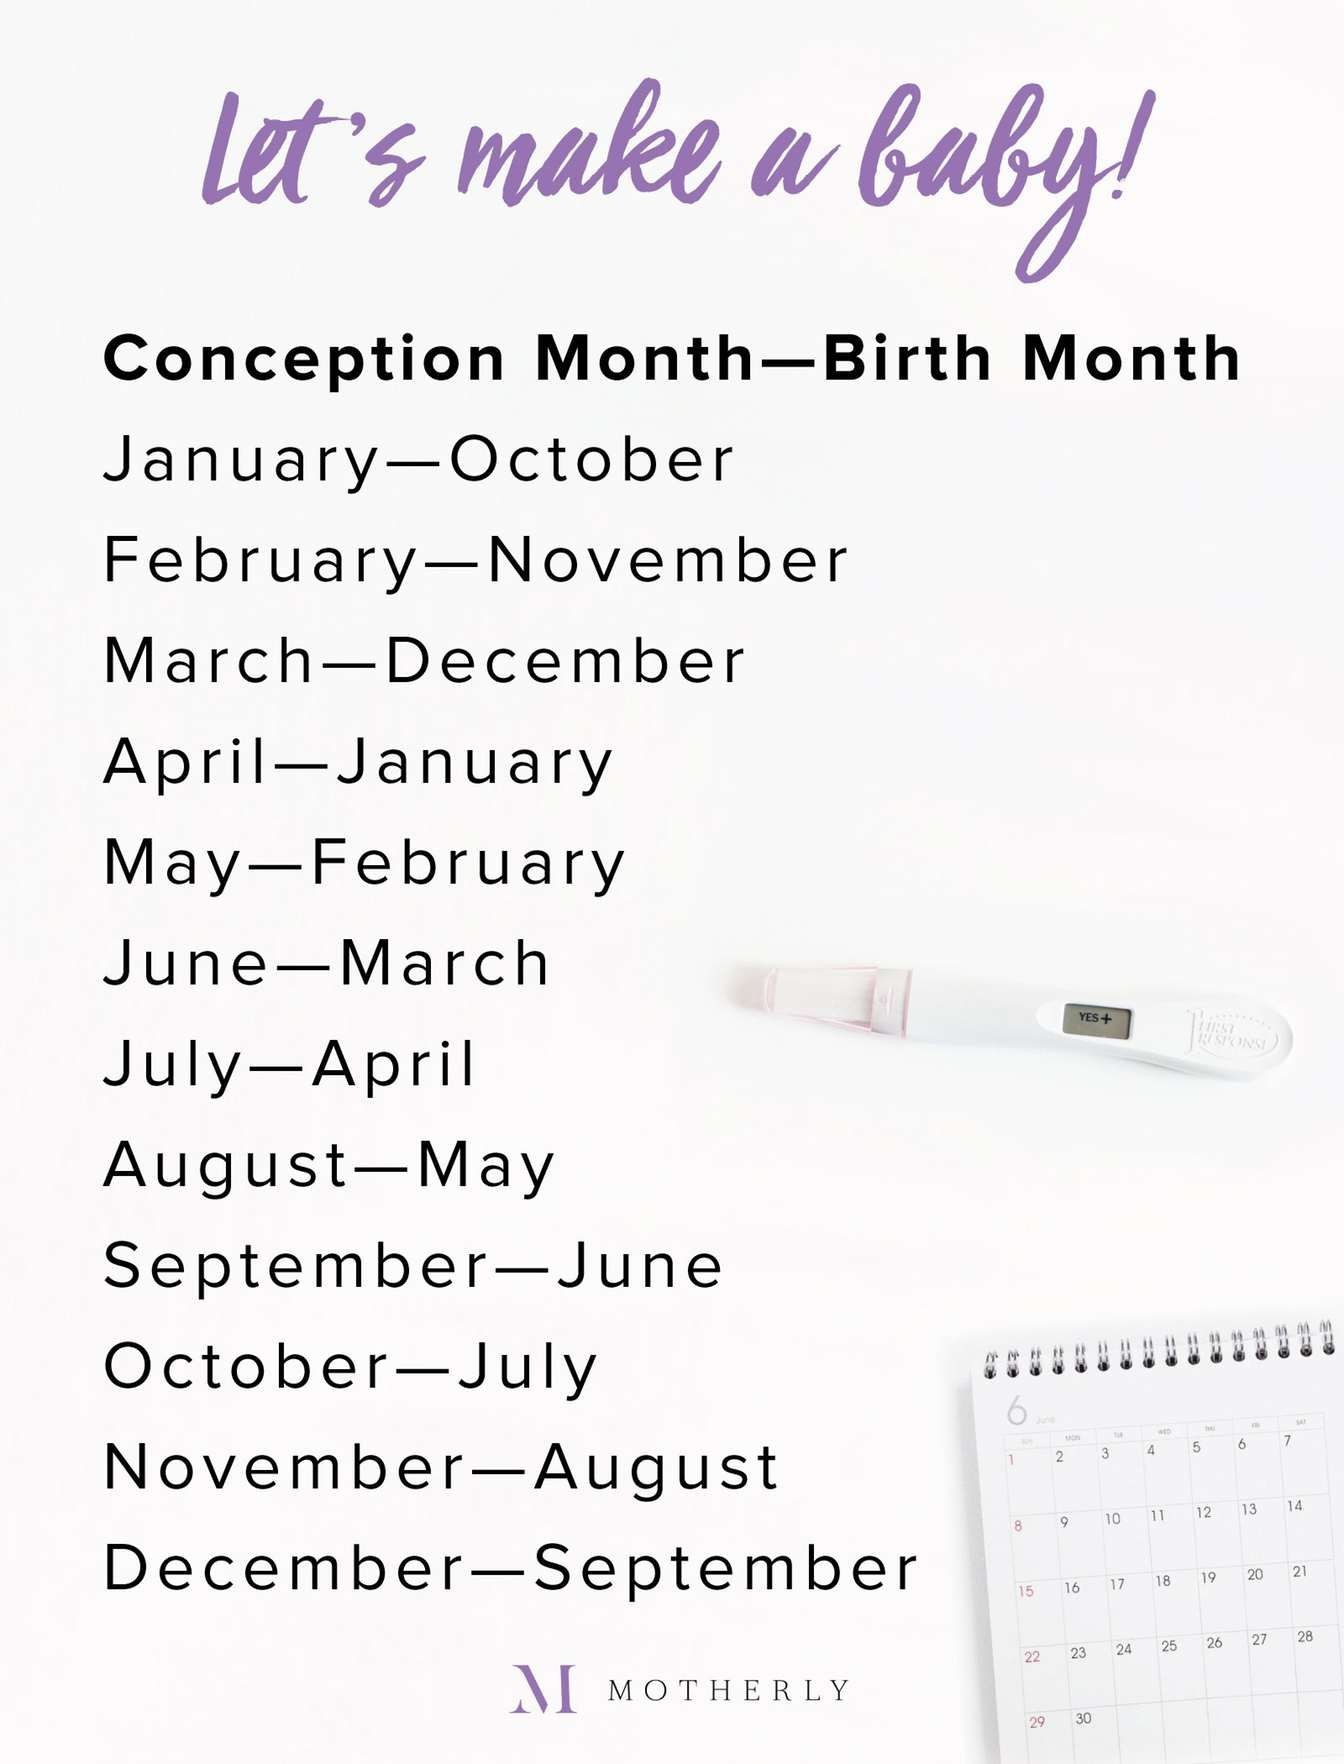 Image result for conception month birth month Planning To Get Pregnant When To Get Pregnant